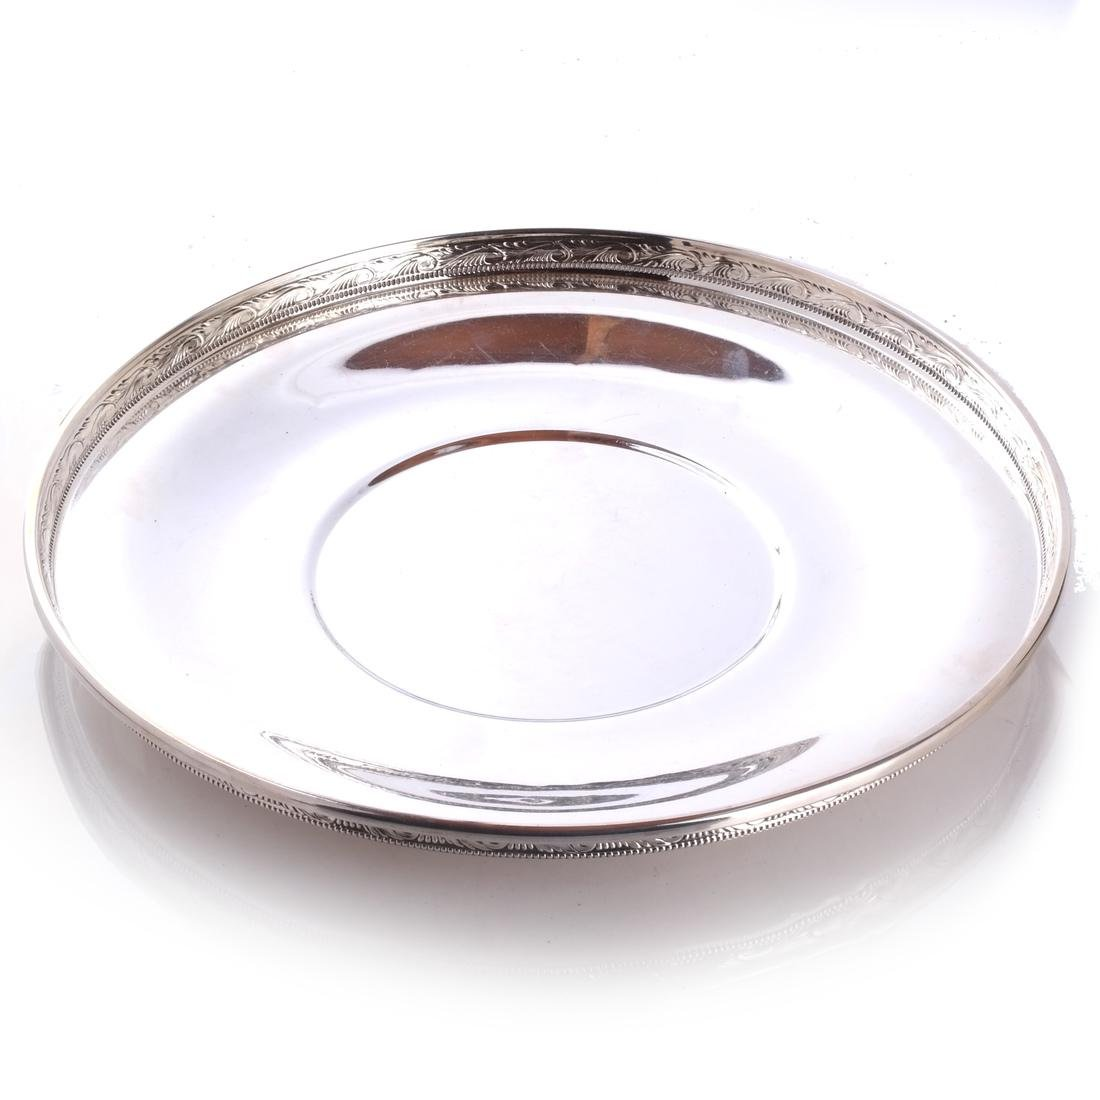 Reed & Barton Galleried Serving Tray